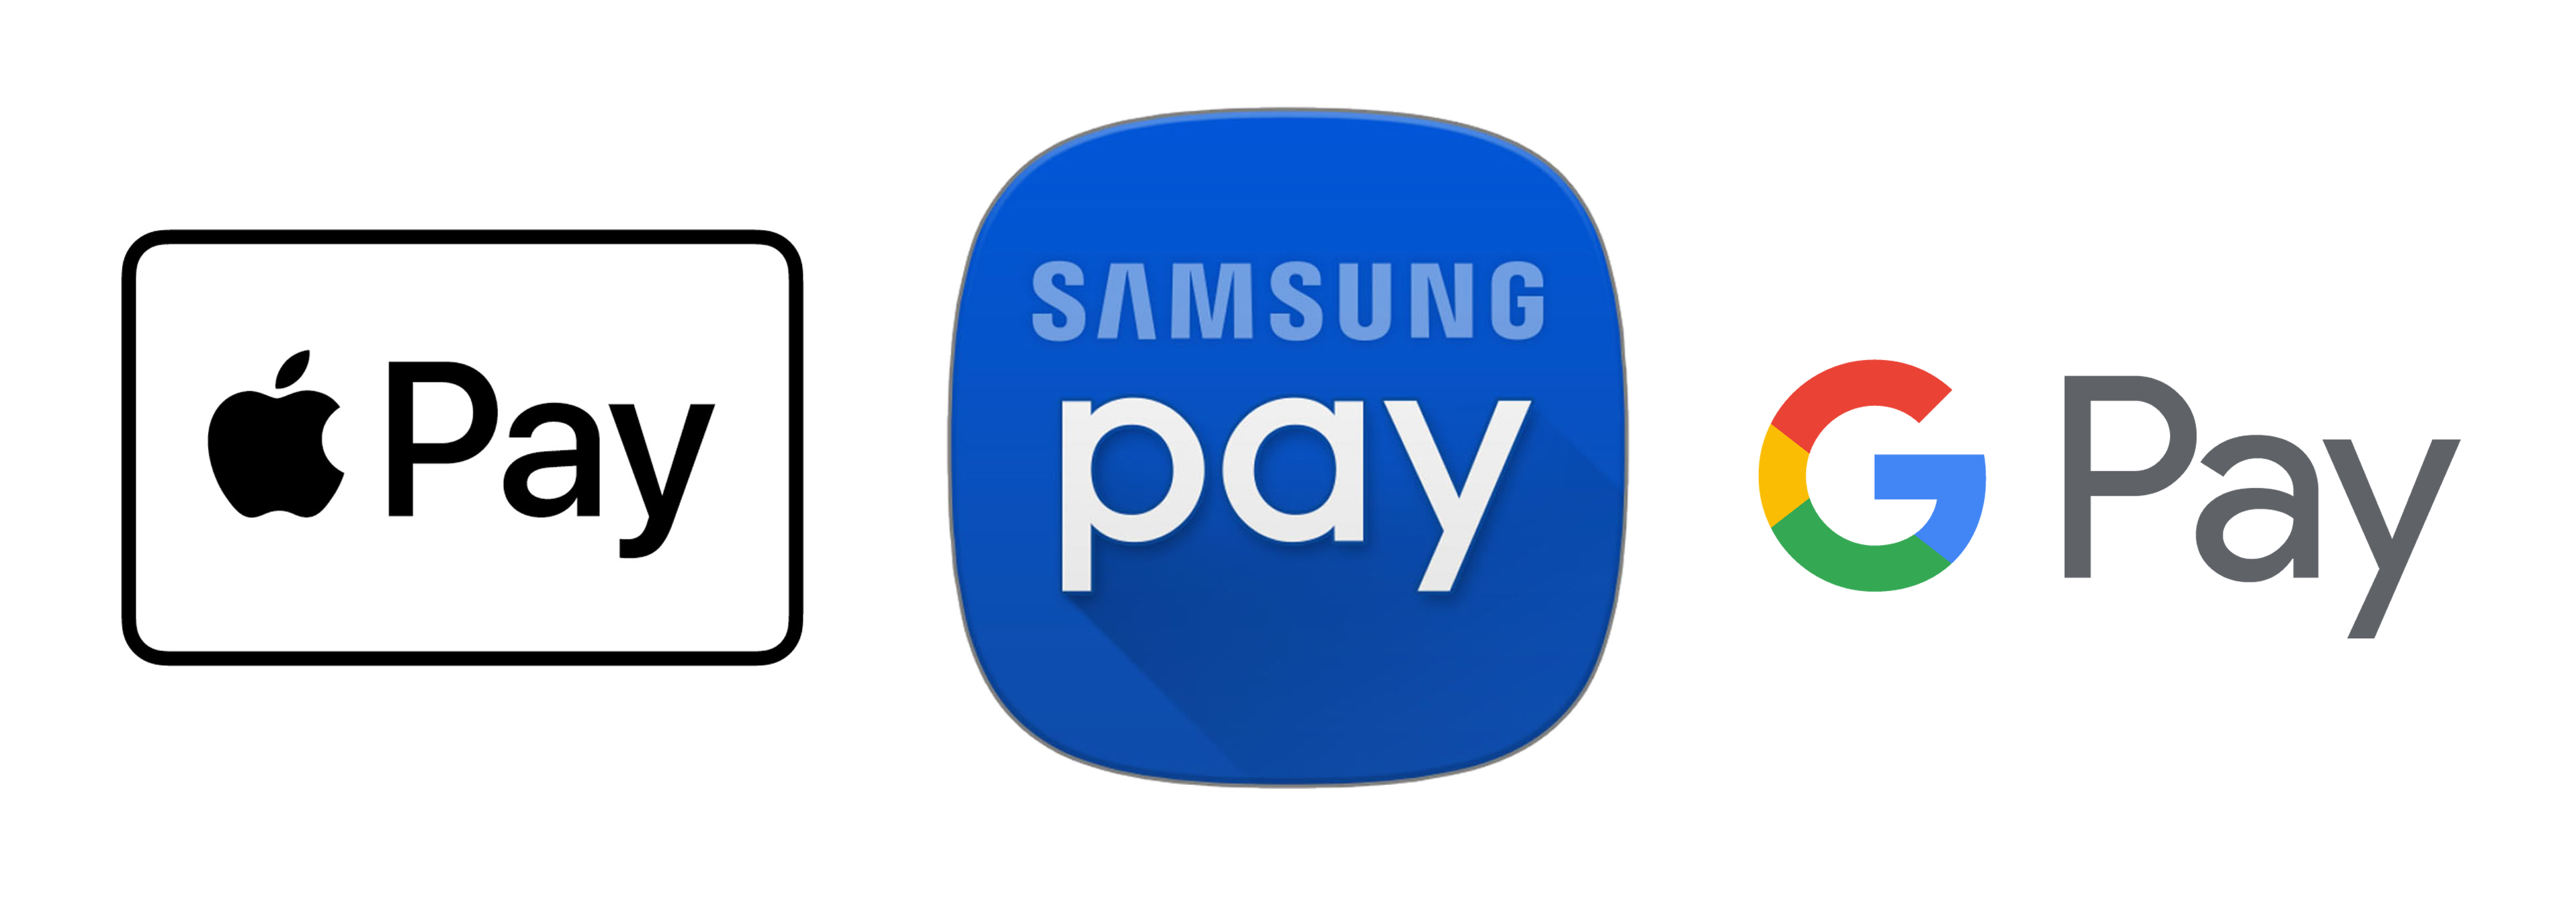 Google Pay Apple Pay Samsung Pay logos